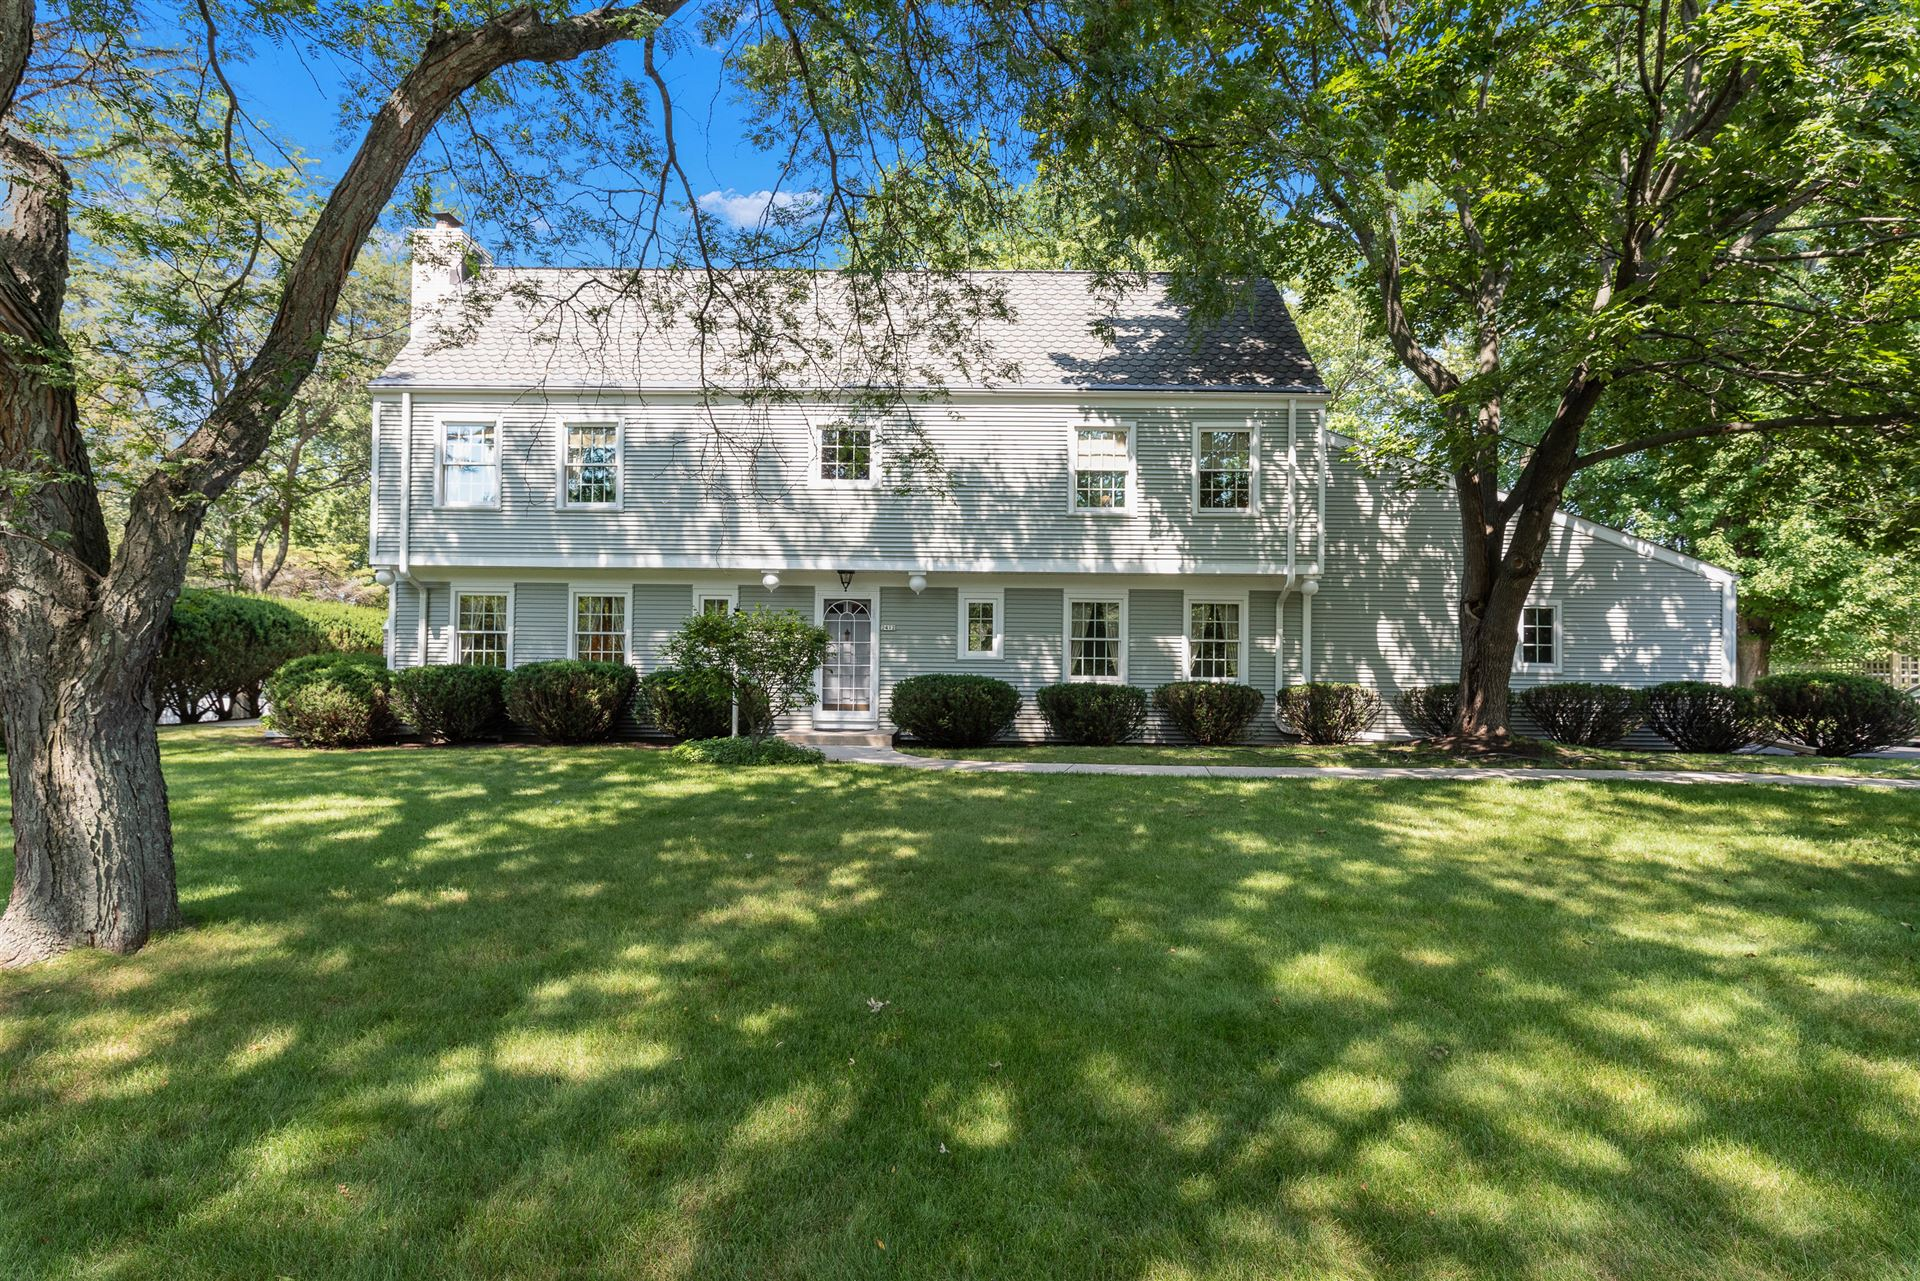 2412 W Chestnut Rd, Mequon, WI 53092 - #: 1759013